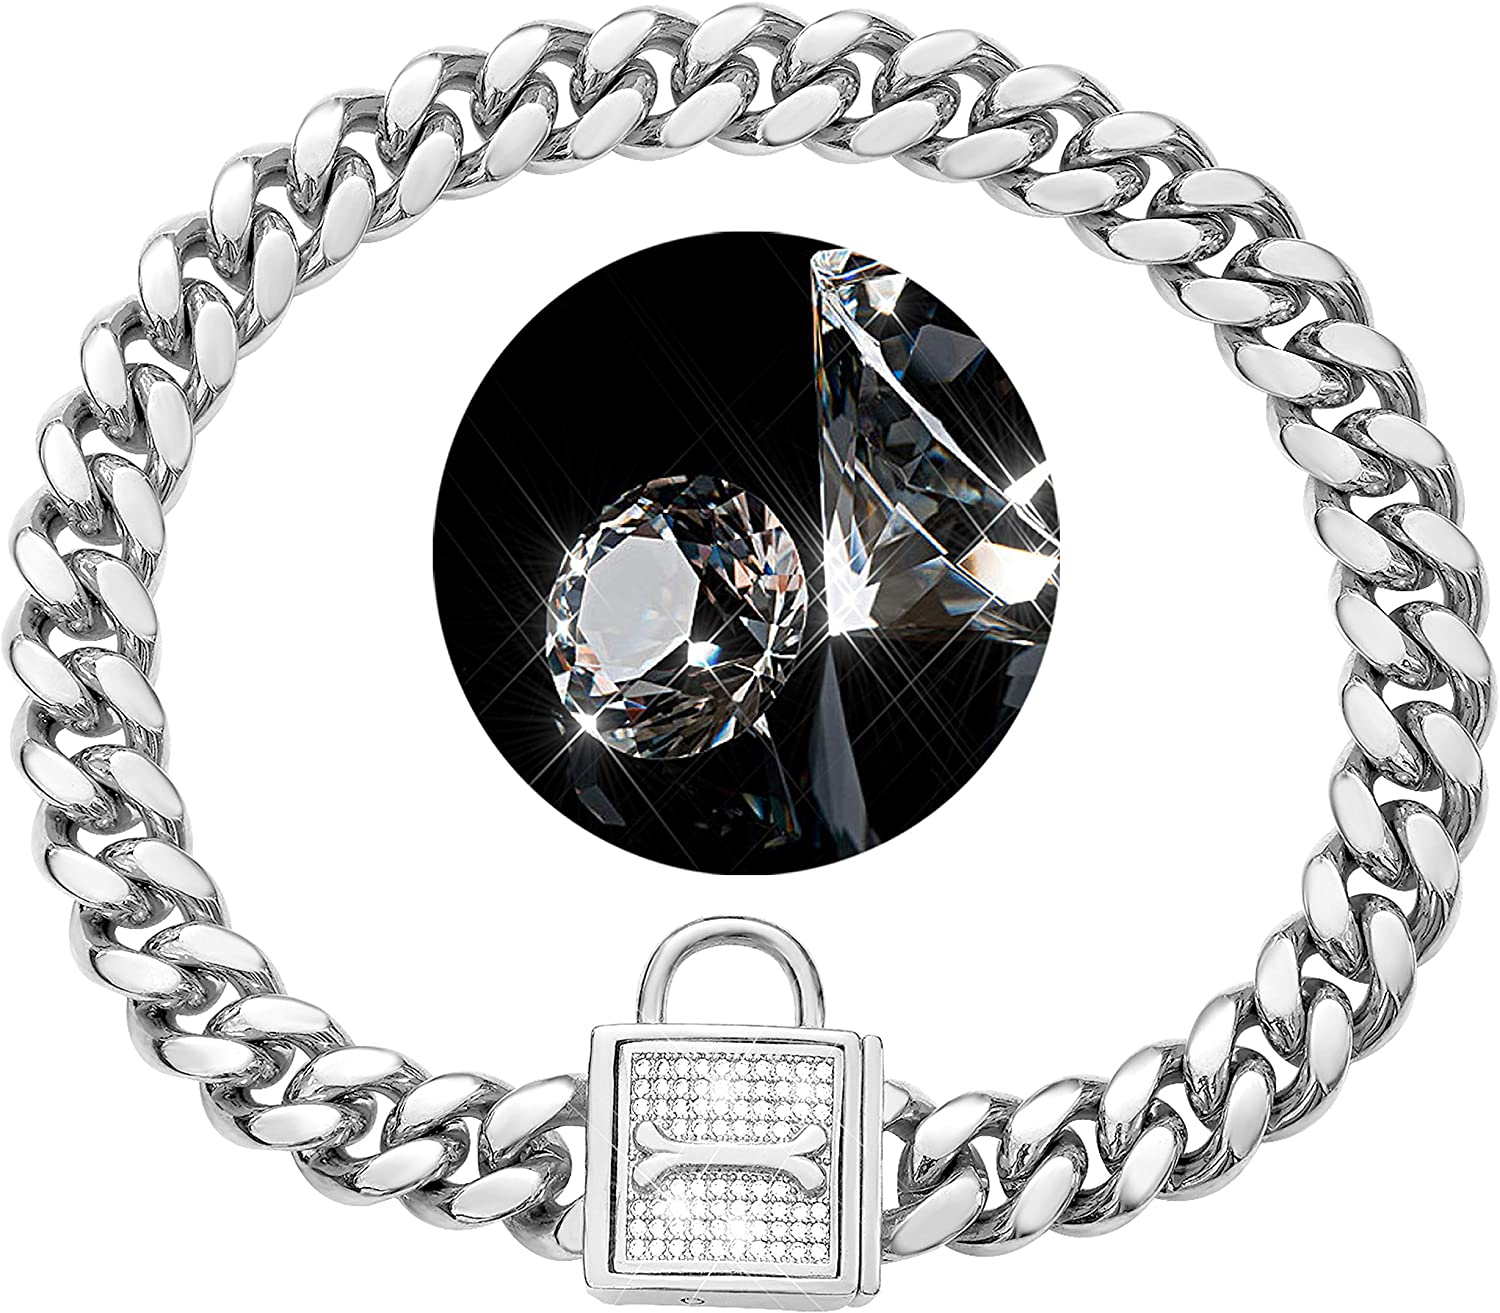 PRADOG Chain Dog Collar with Locking High Zirconia Max 77% OFF New product! New type 12mm Polished